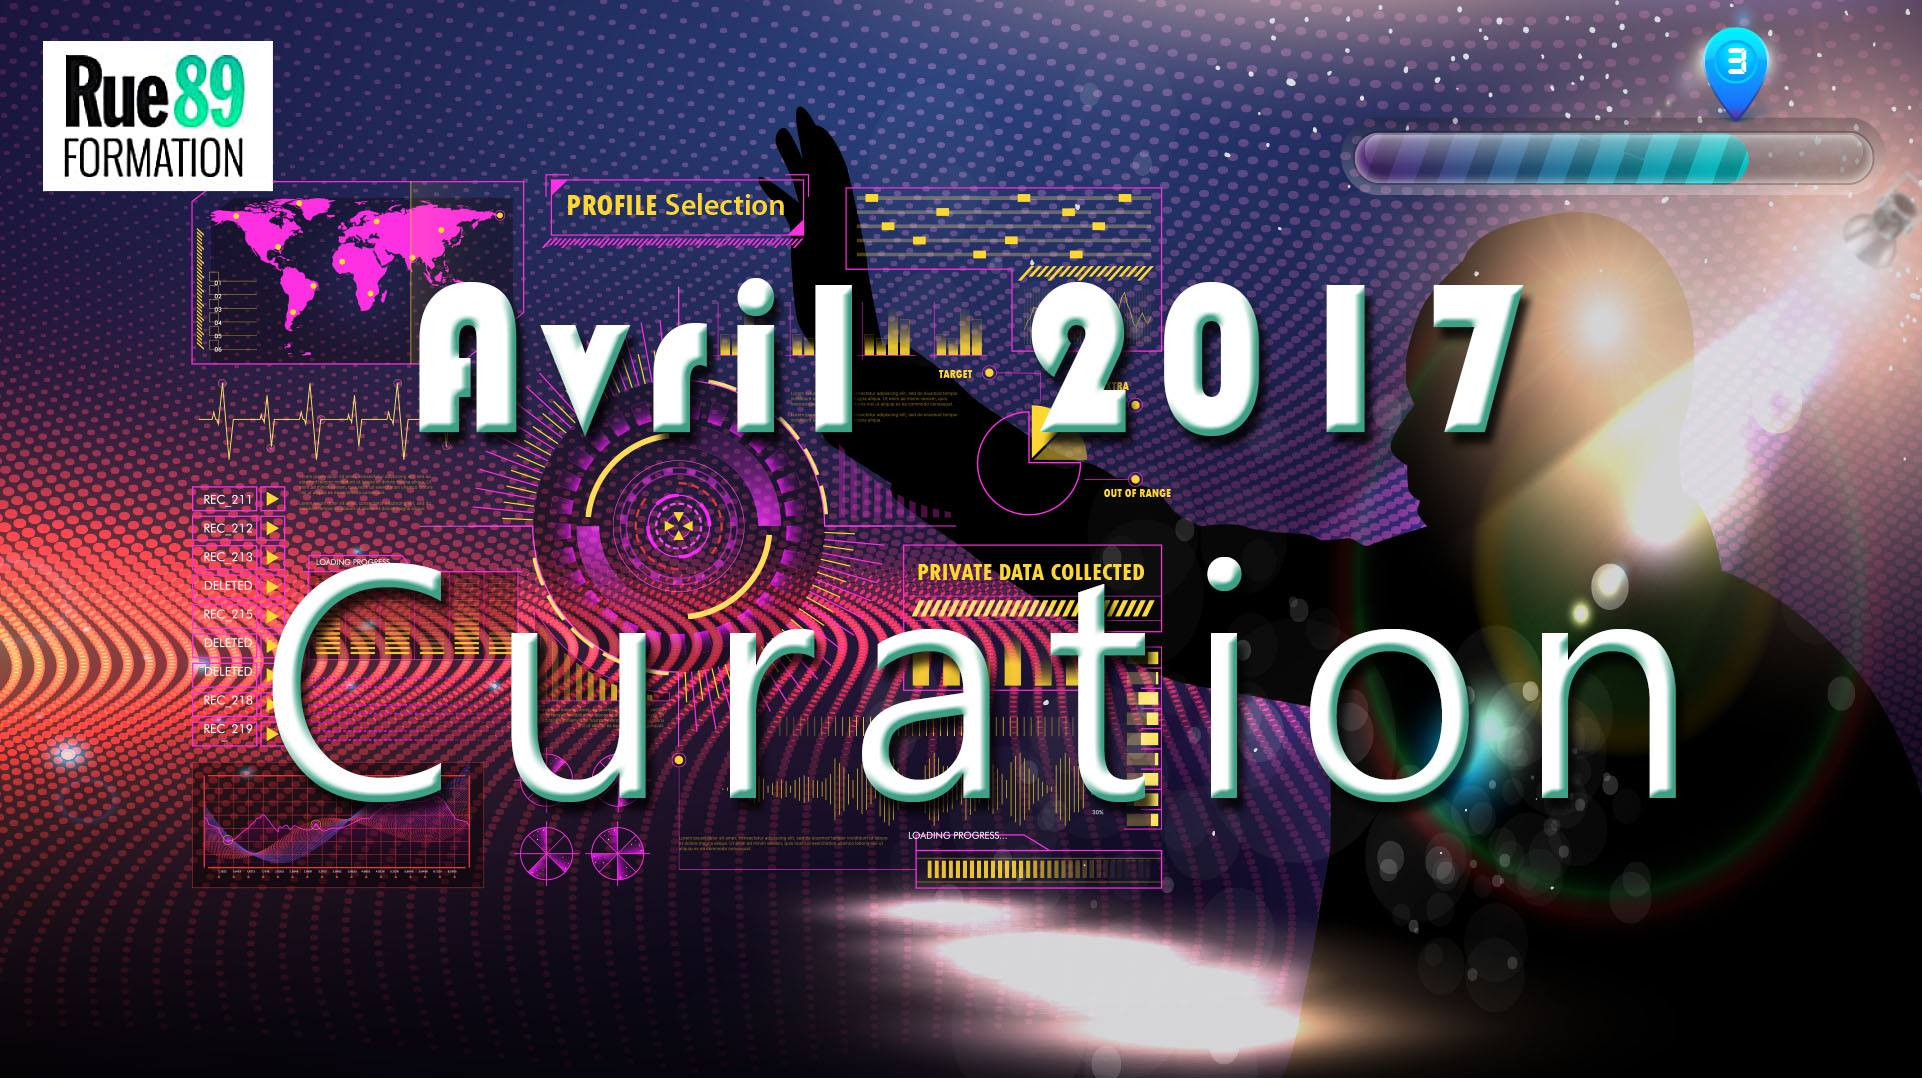 curation_ru89formation_avril_s3